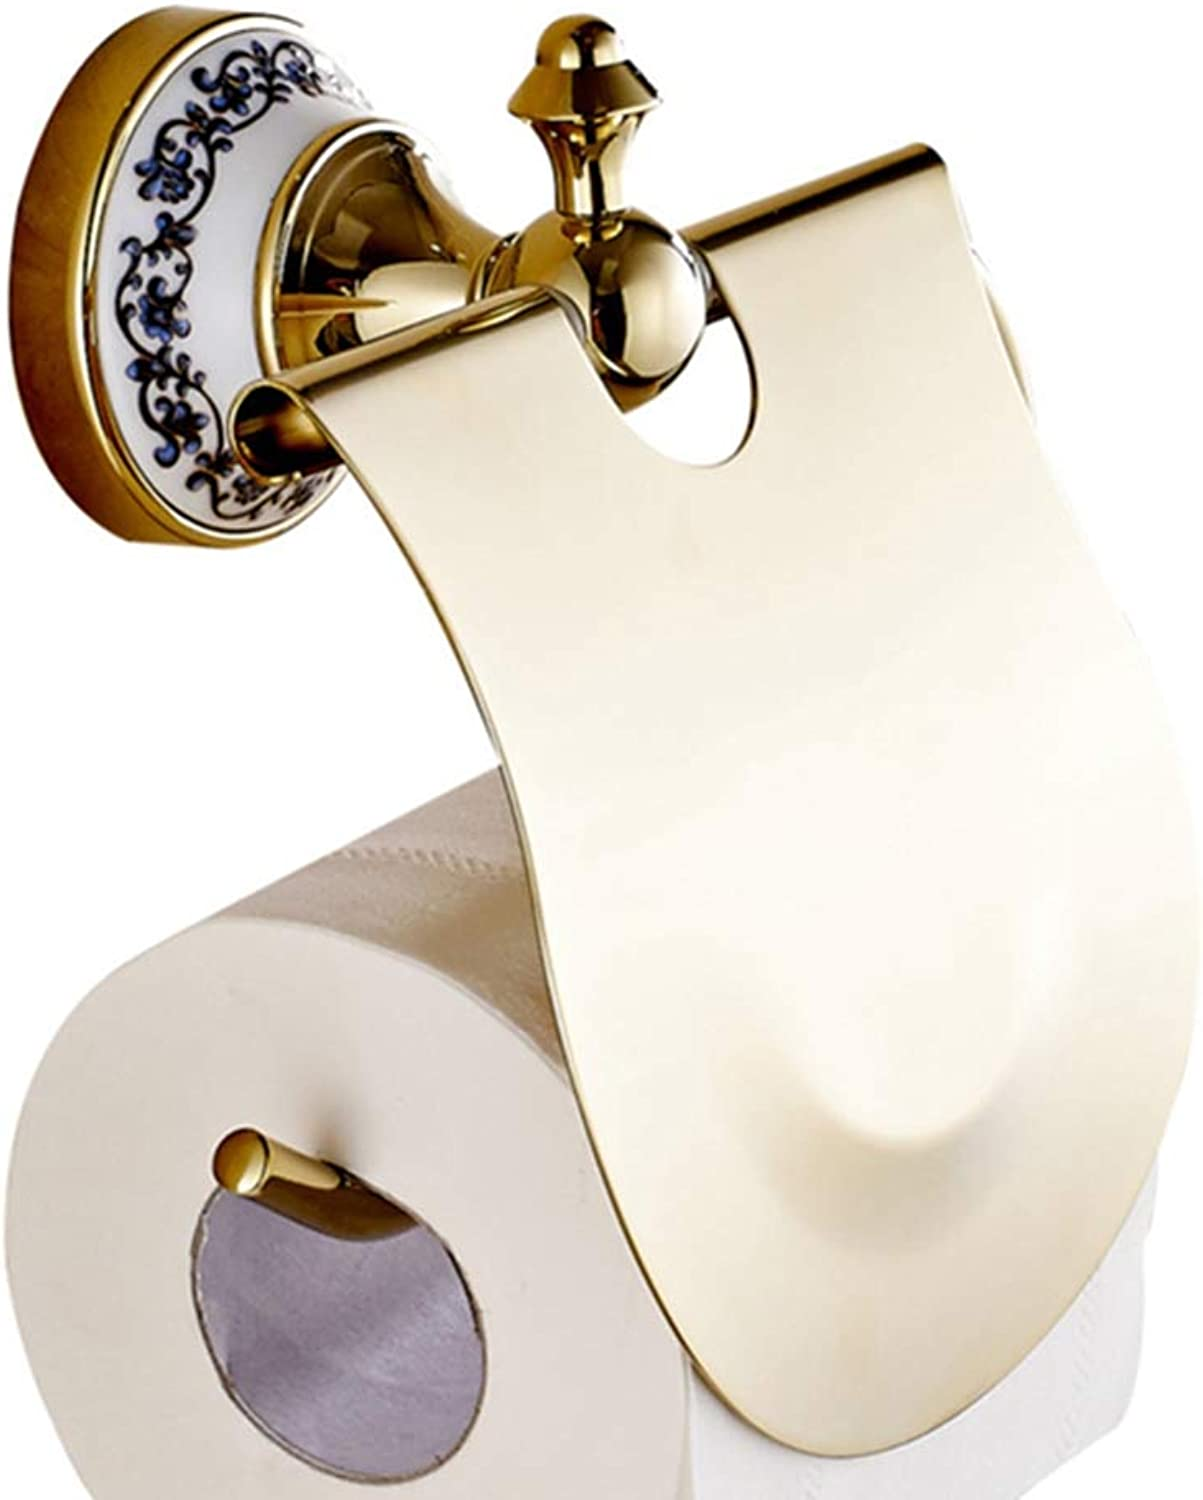 LUDSUY Wall Mounted gold Brass Lavatory Toilet Paper Holder Tissue Holder Roll Paper Holder Bathroom Toilet Accessories